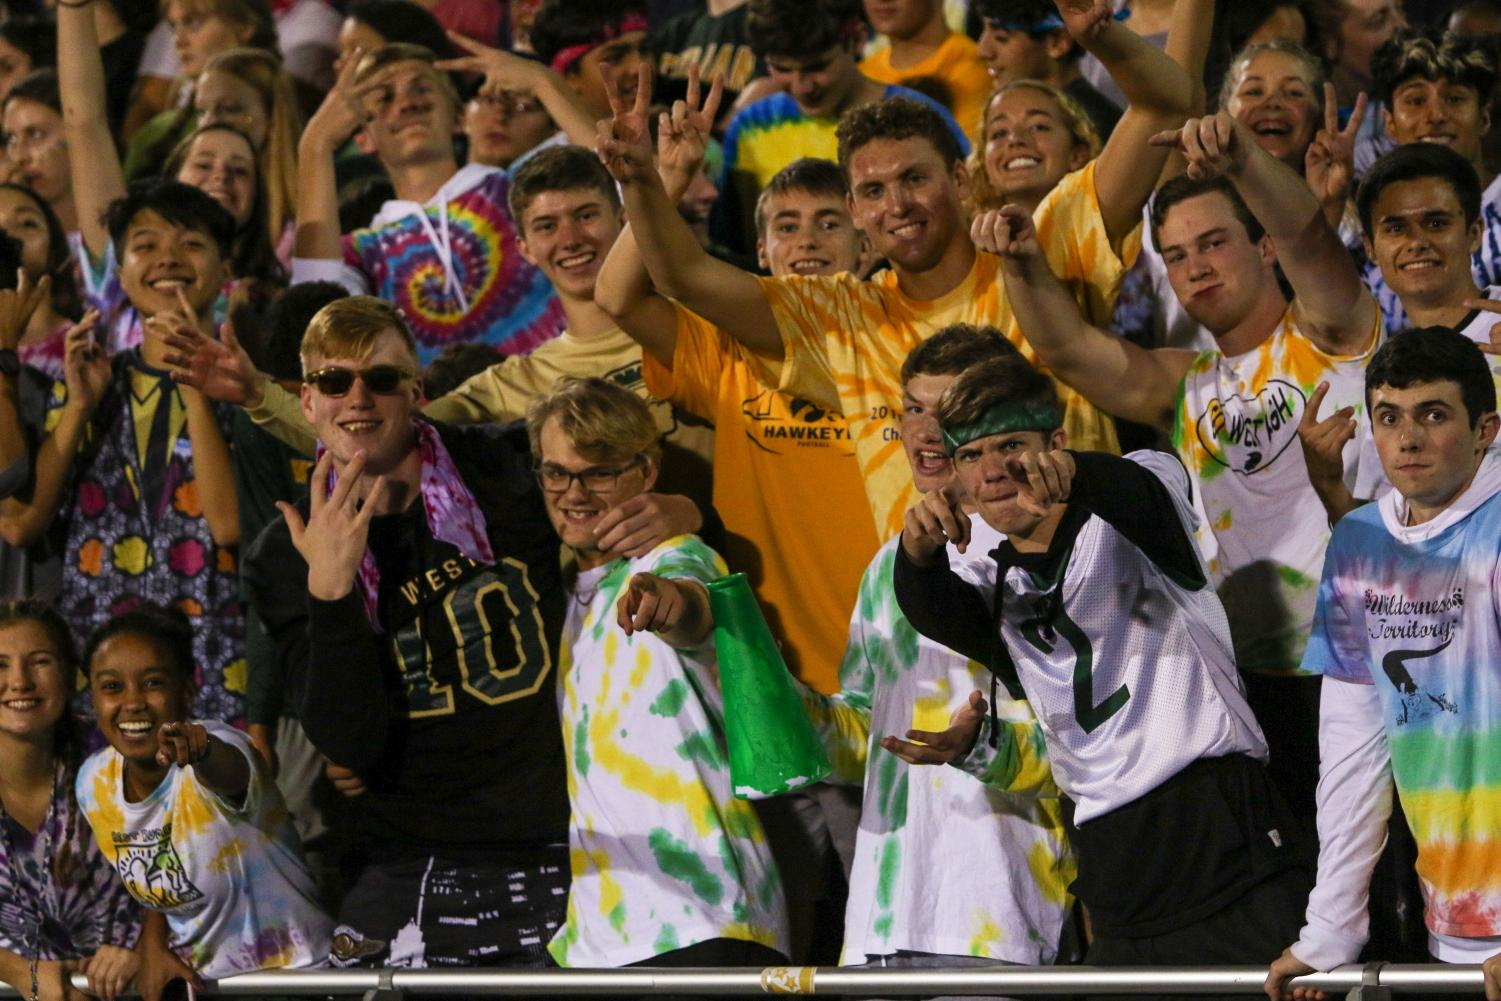 The+student+section+poses+for+a+picture+in+a+game+at+Trojan+Field+on+Sept.+6.